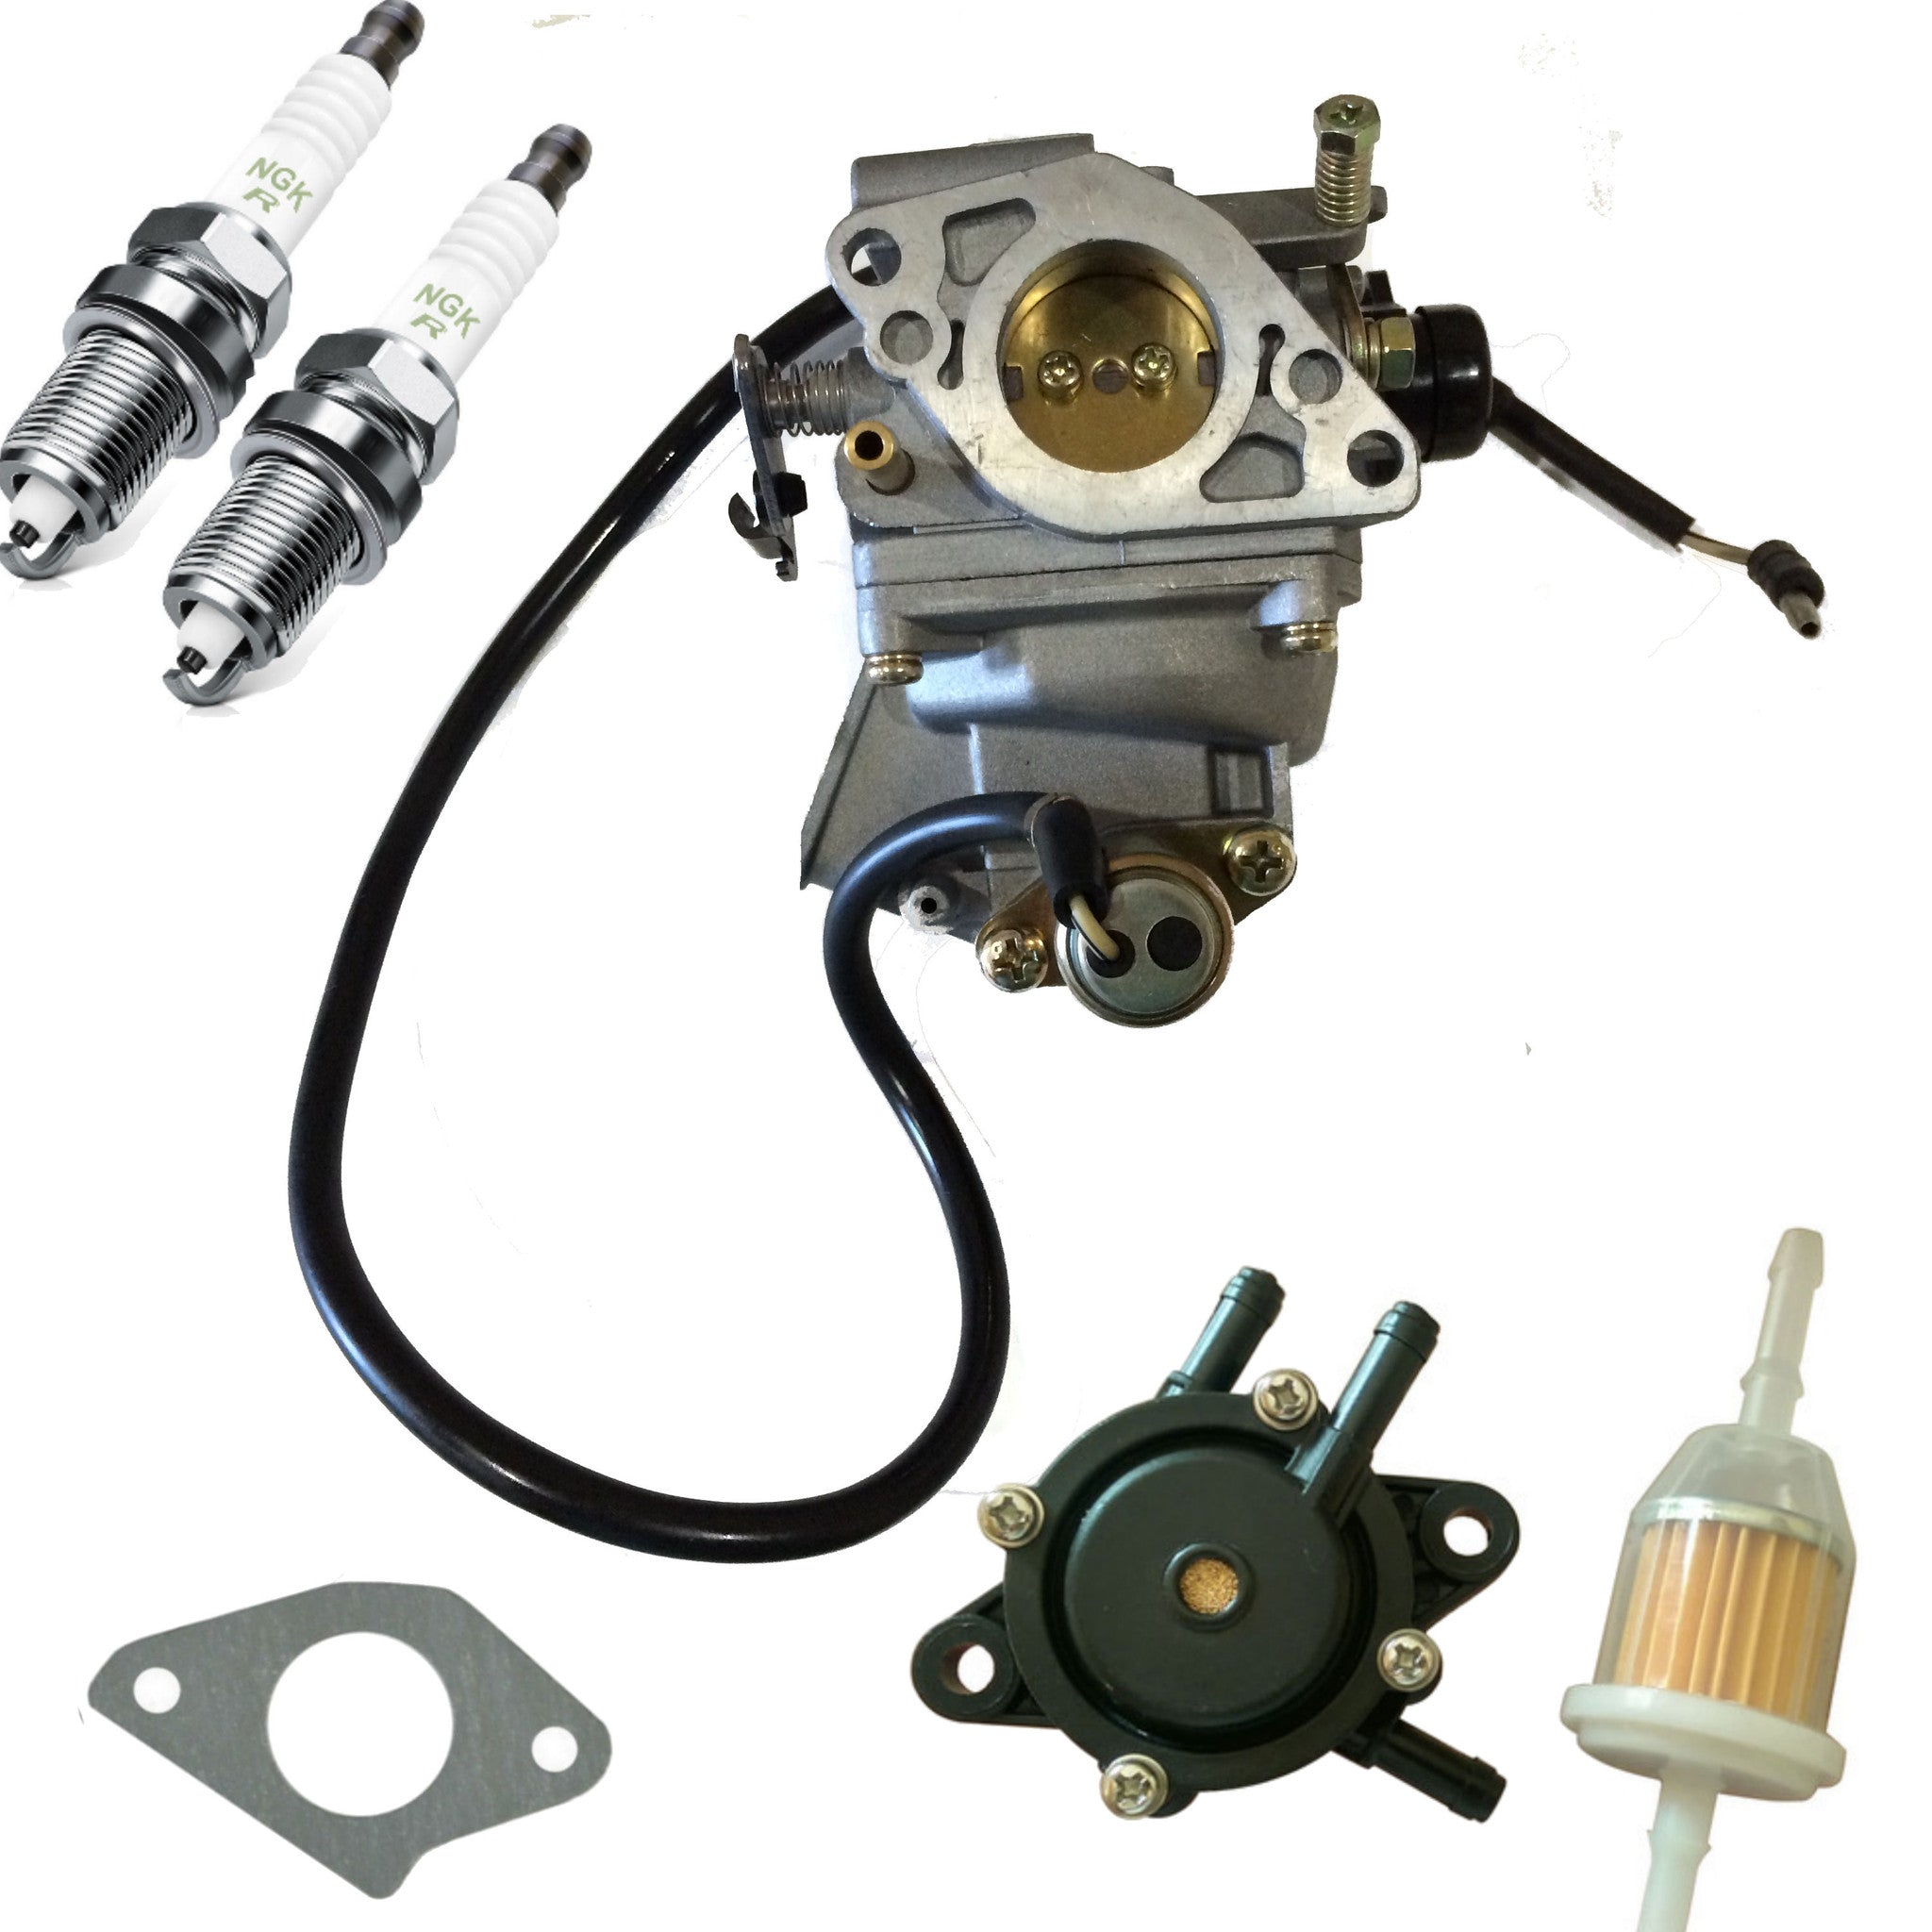 Carburetor Carb for Honda w Fuel Pump Filter Plugs GX620 Gx610 Mower Gas Engine - AE-Power